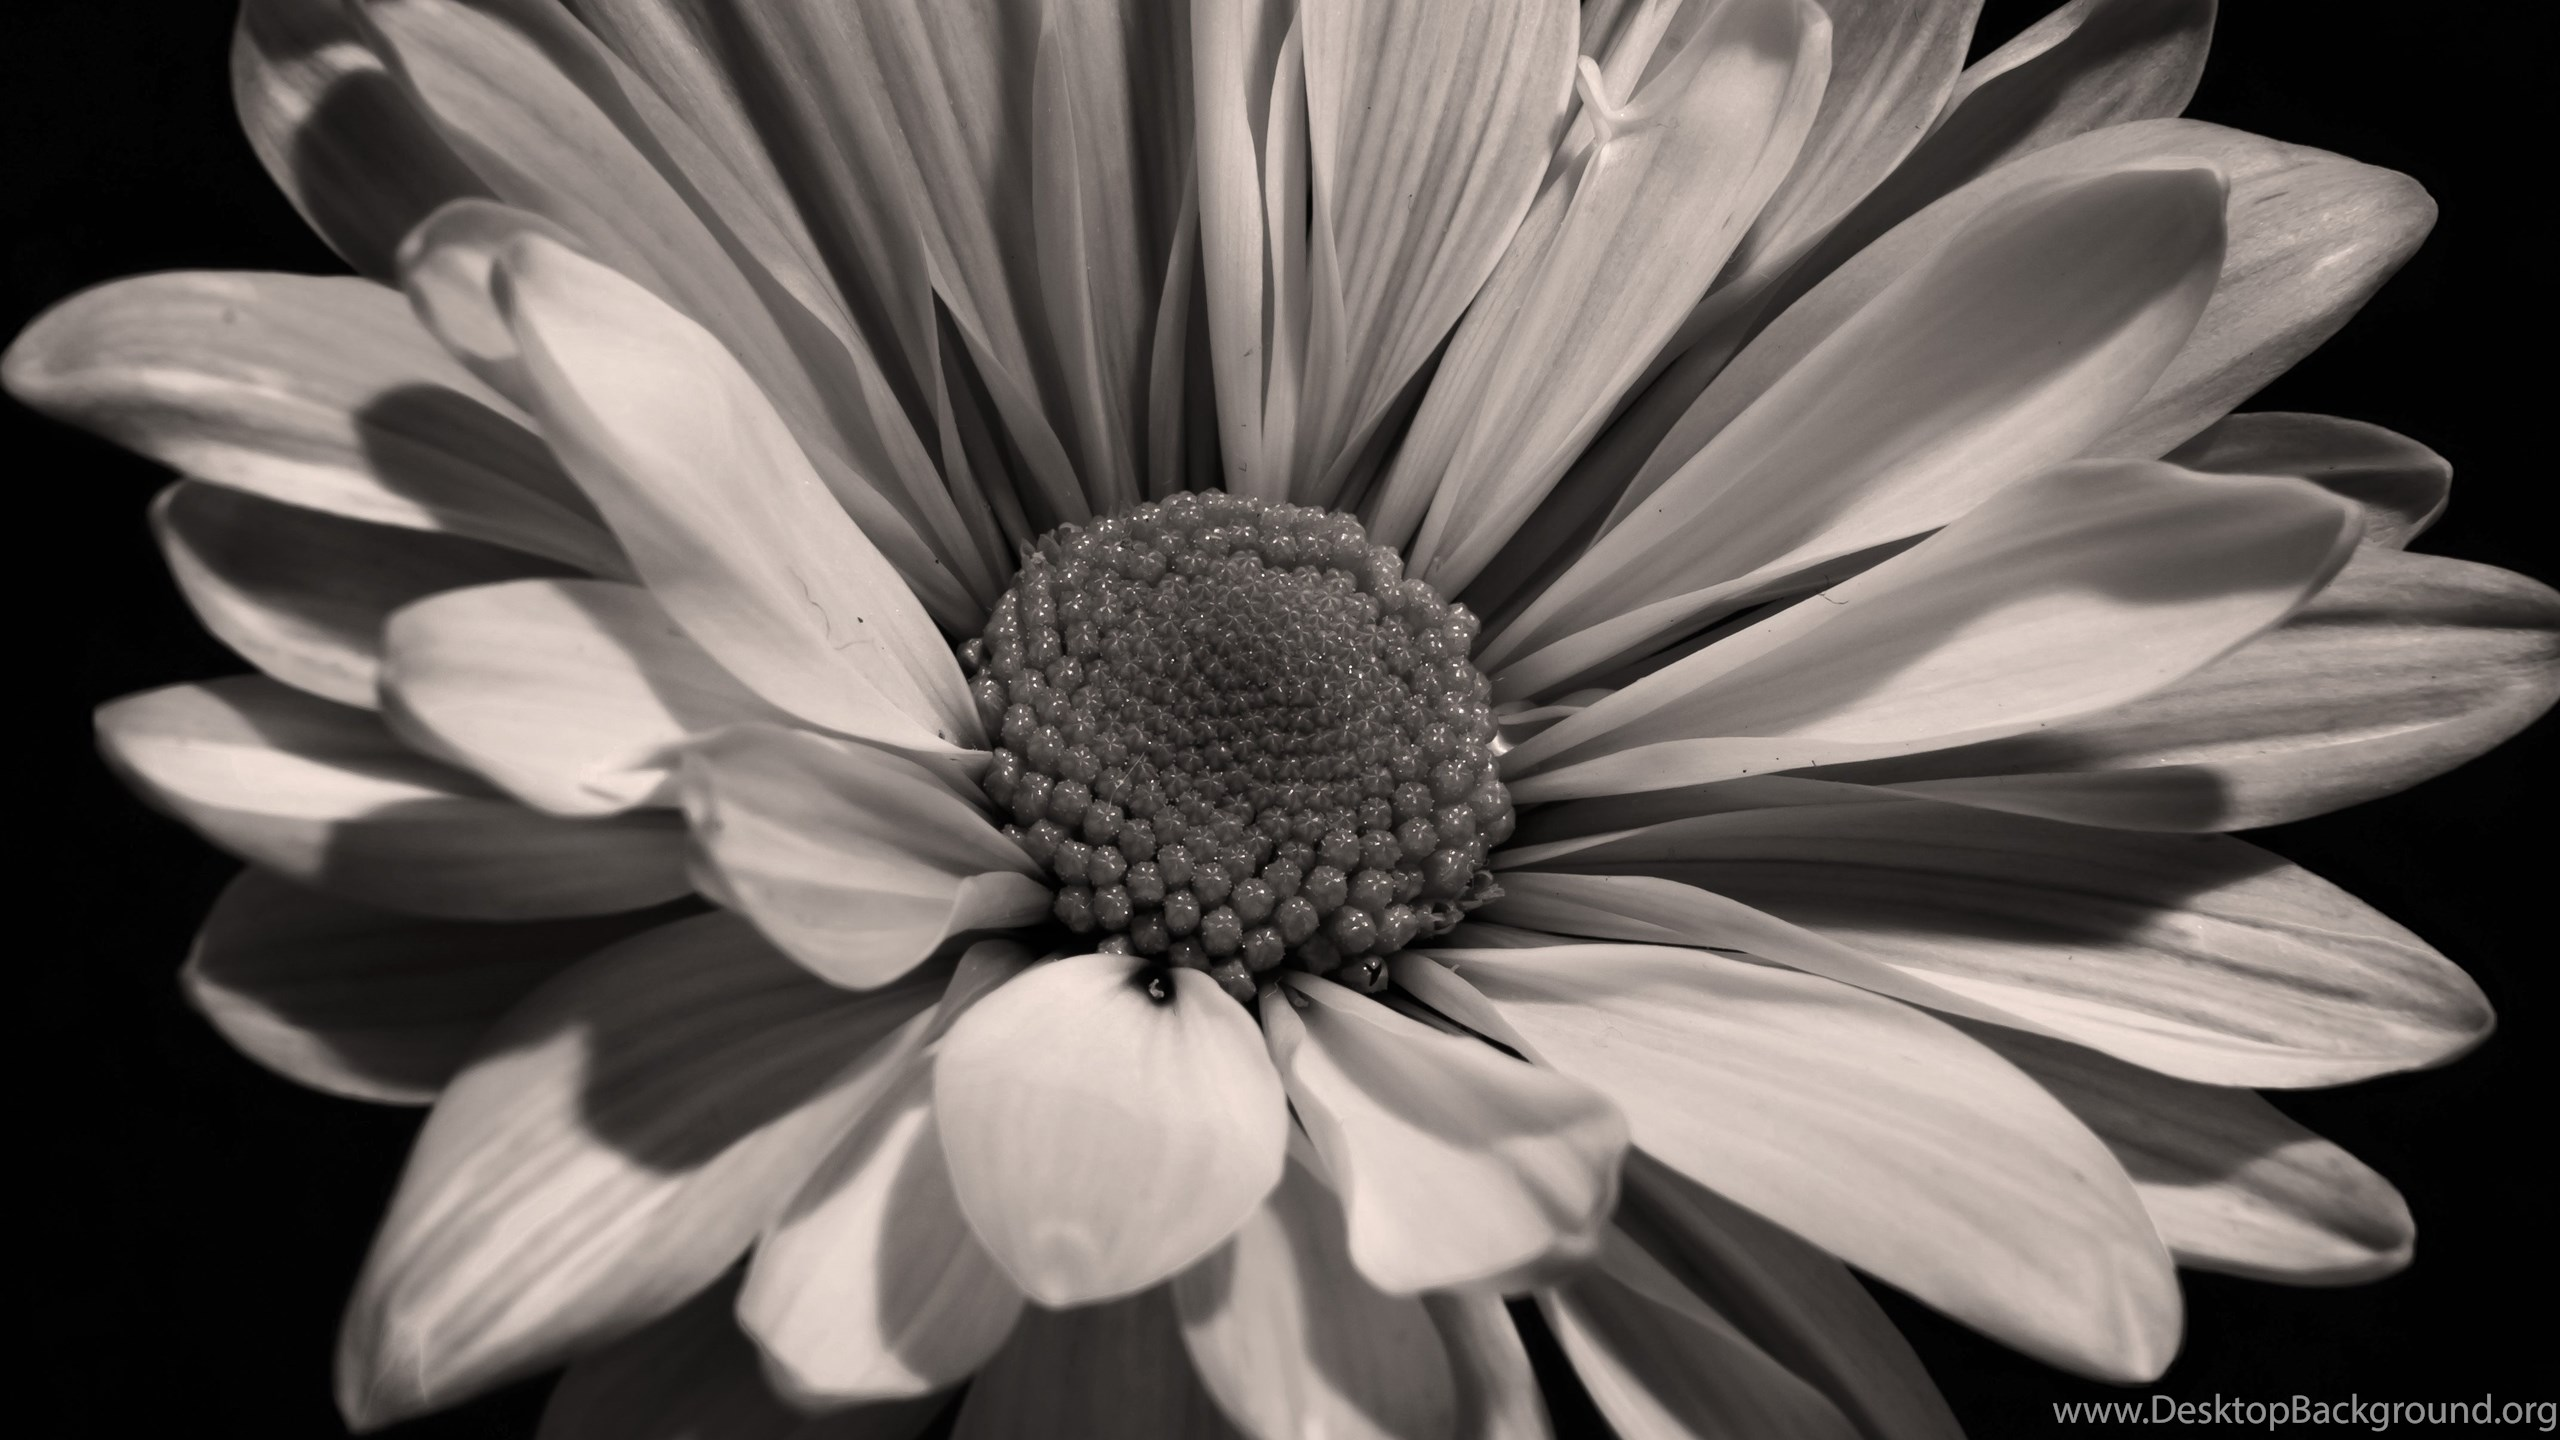 Black And White Sunflower Photography Wallpapers Wallpaper Desktop